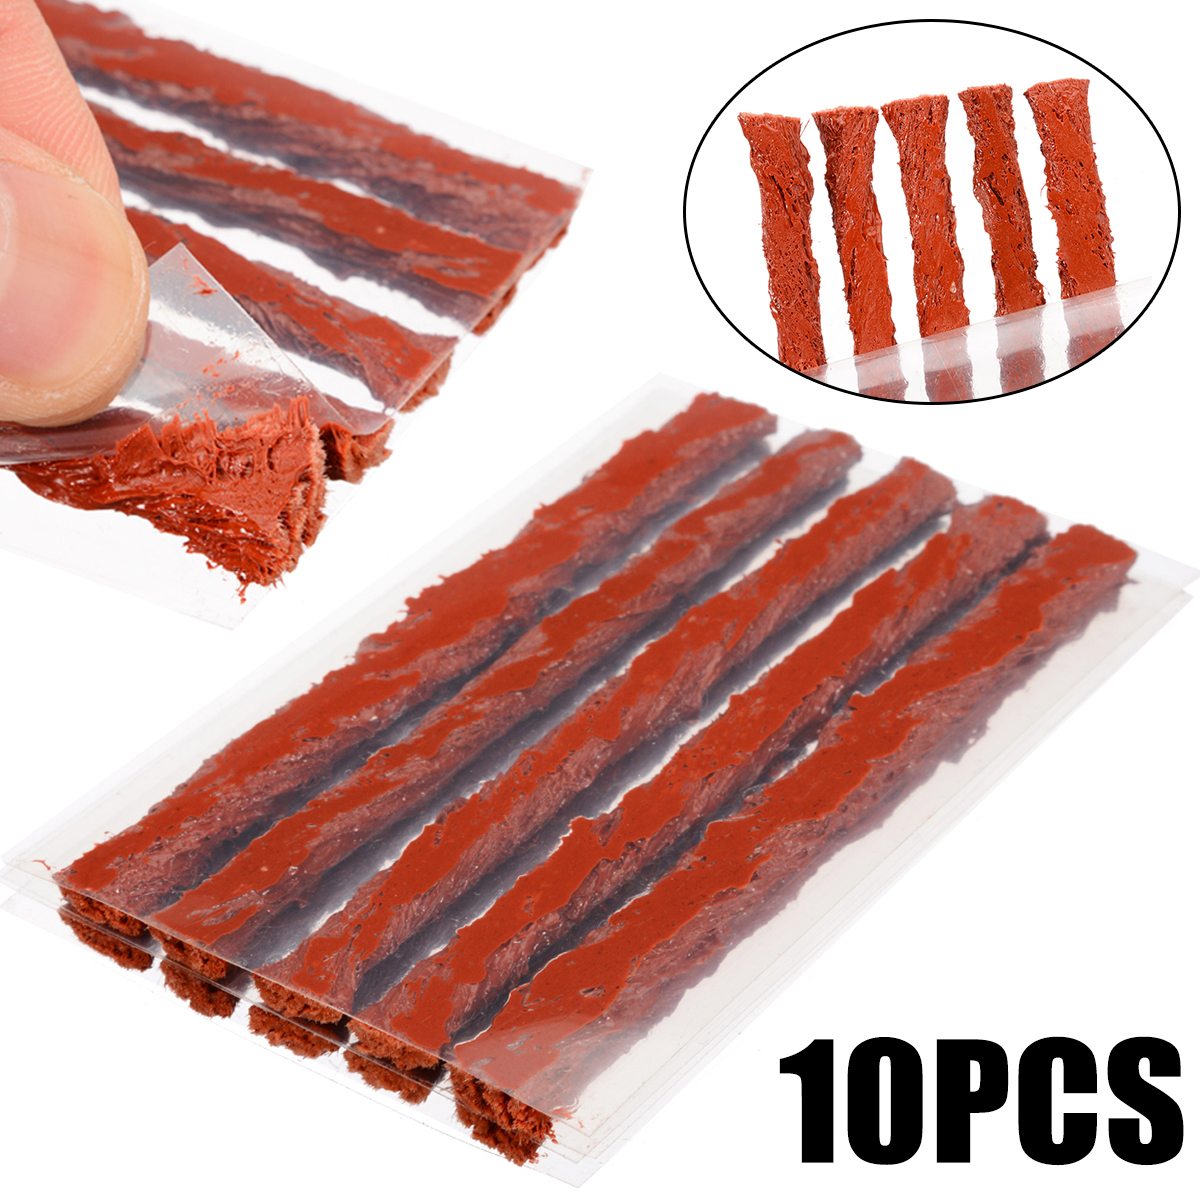 10pcs 100x6mm Car Motorcycle Tire Tyre Puncture Repair Rubber Strip Tubeless Tire Repair Tools Strips Stirring Glue-in Tire Repair Tools from Automobiles & Motorcycles